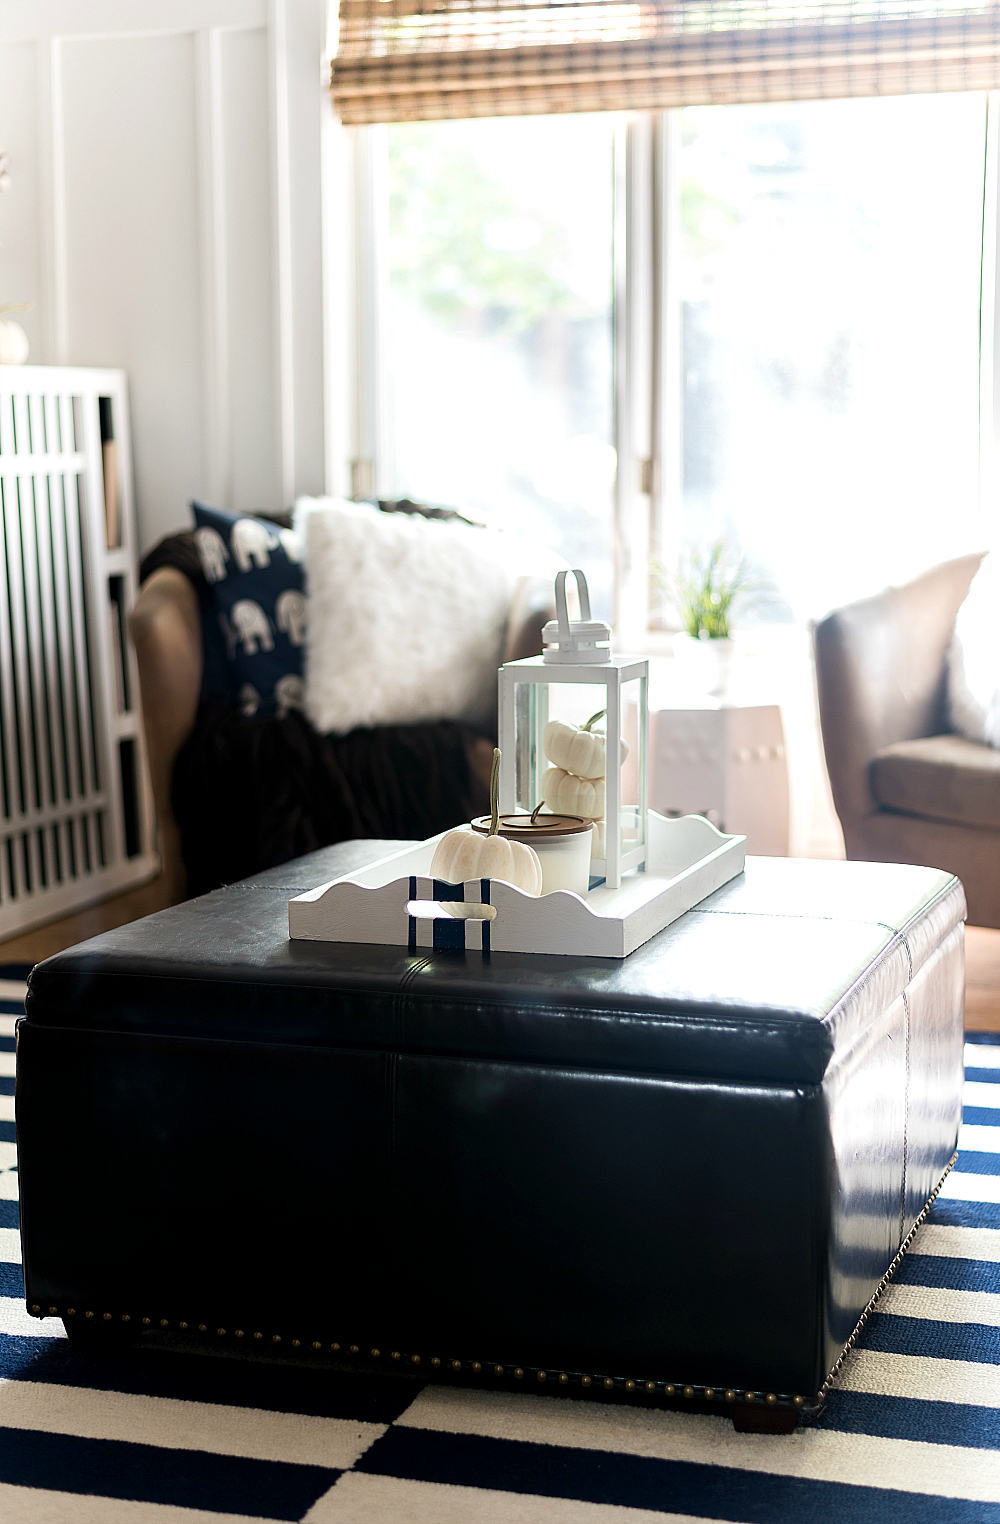 Fall Decor in Navy & White - Neutral Fall Decor Ideas